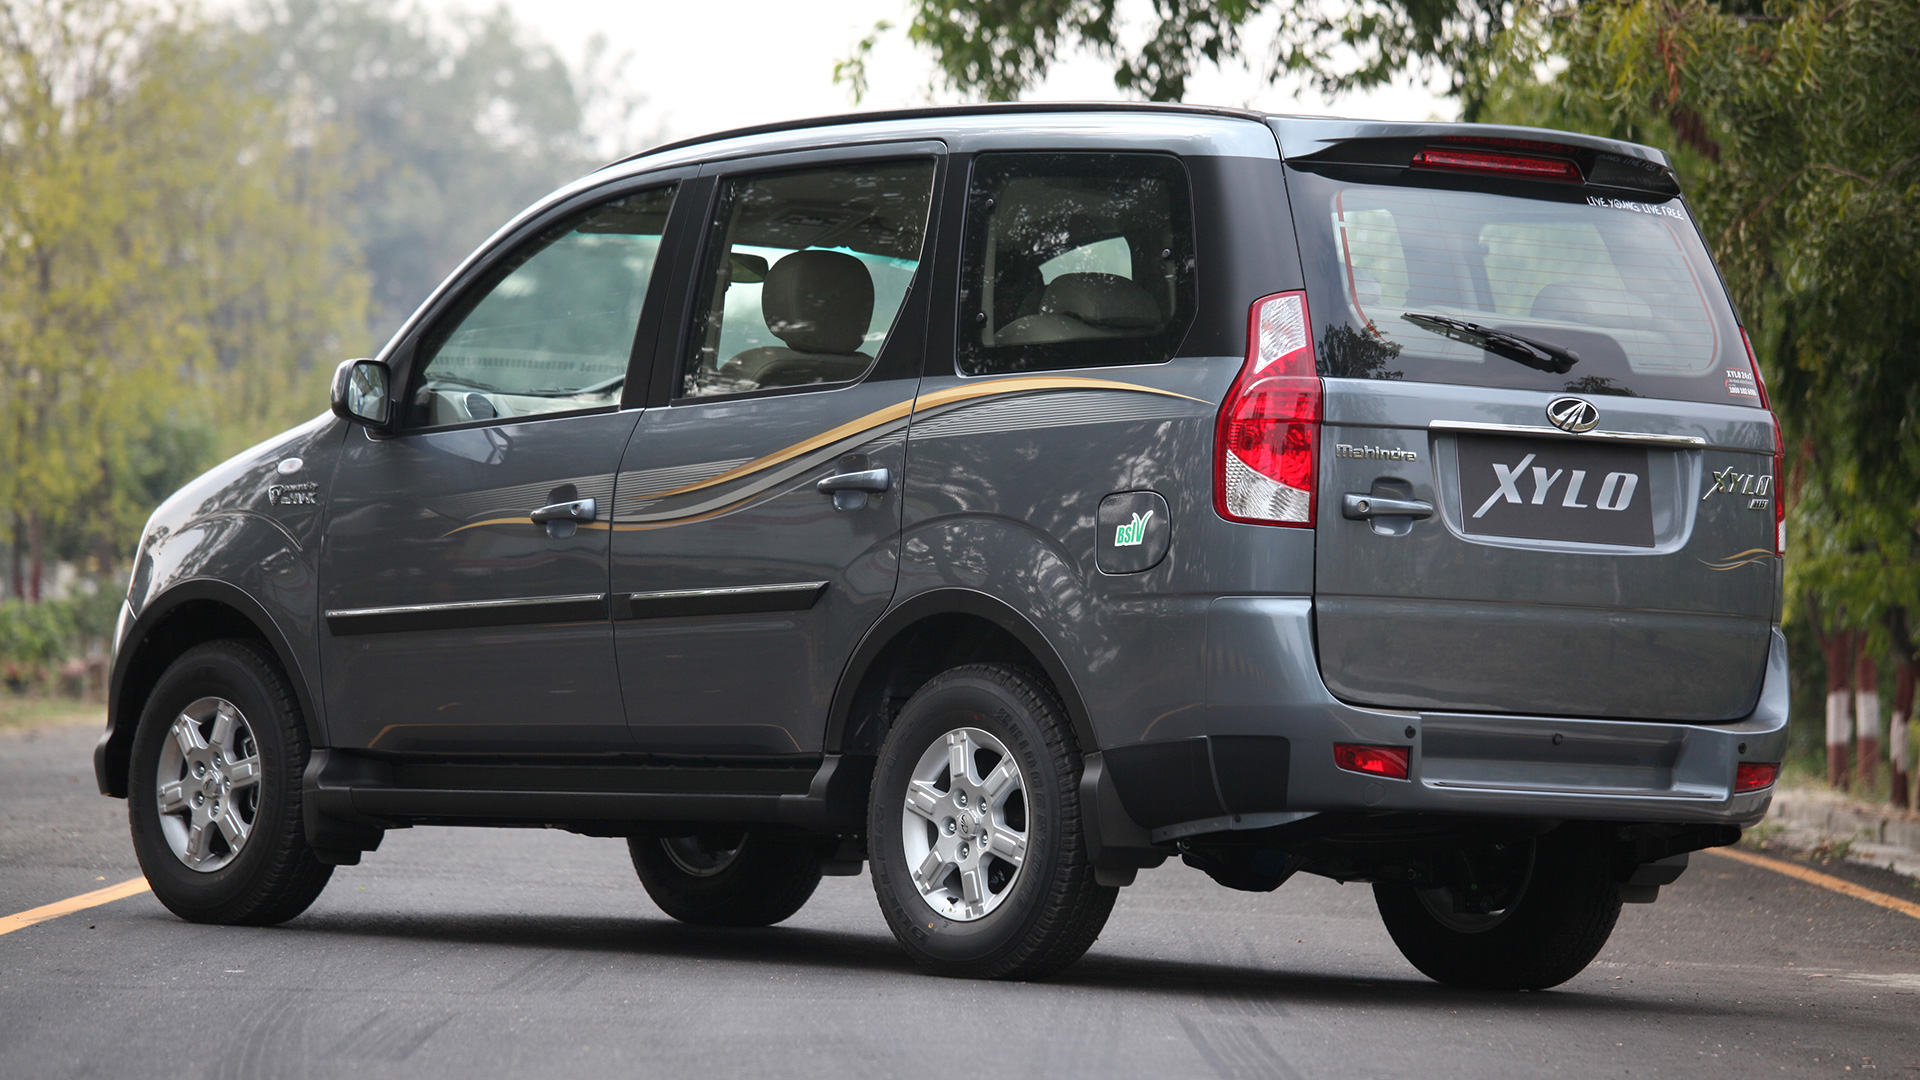 Mahindra Xylo 2014 H8 Price Mileage Reviews